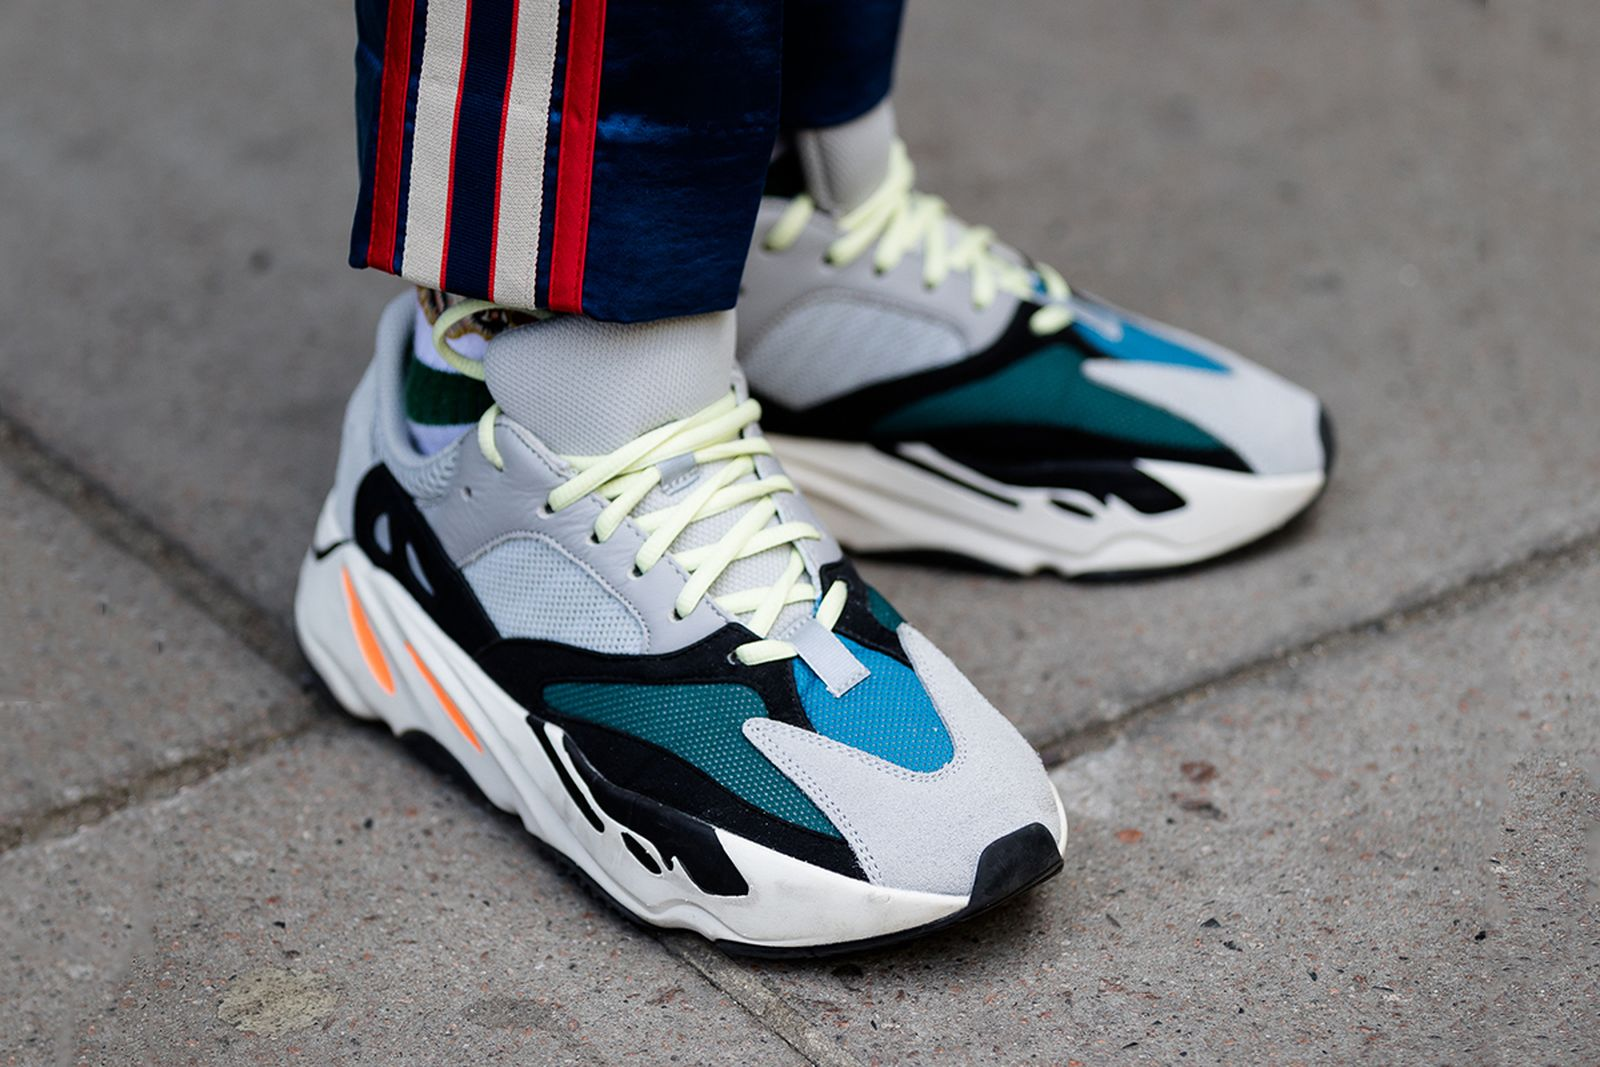 sonriendo domingo Seguir  adidas YEEZY Boost 700 Wave Runner: Buy & Sell at StockX